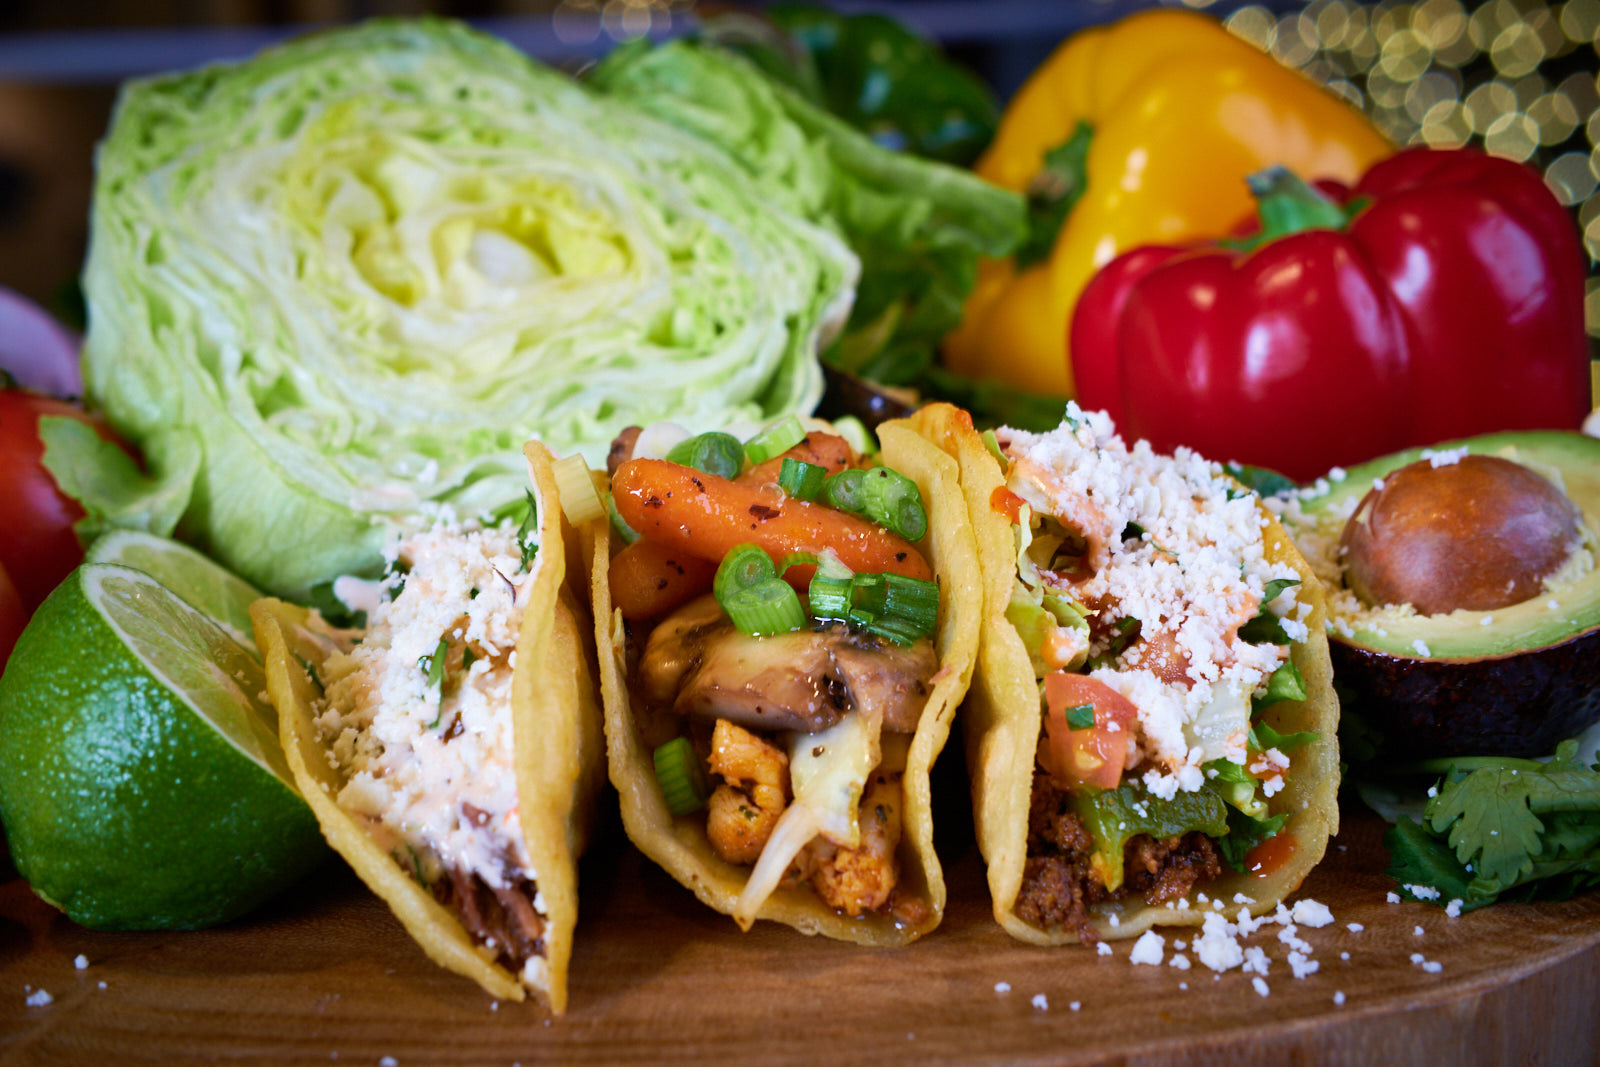 Food Photography & Professional photographer in Knoxville, TN